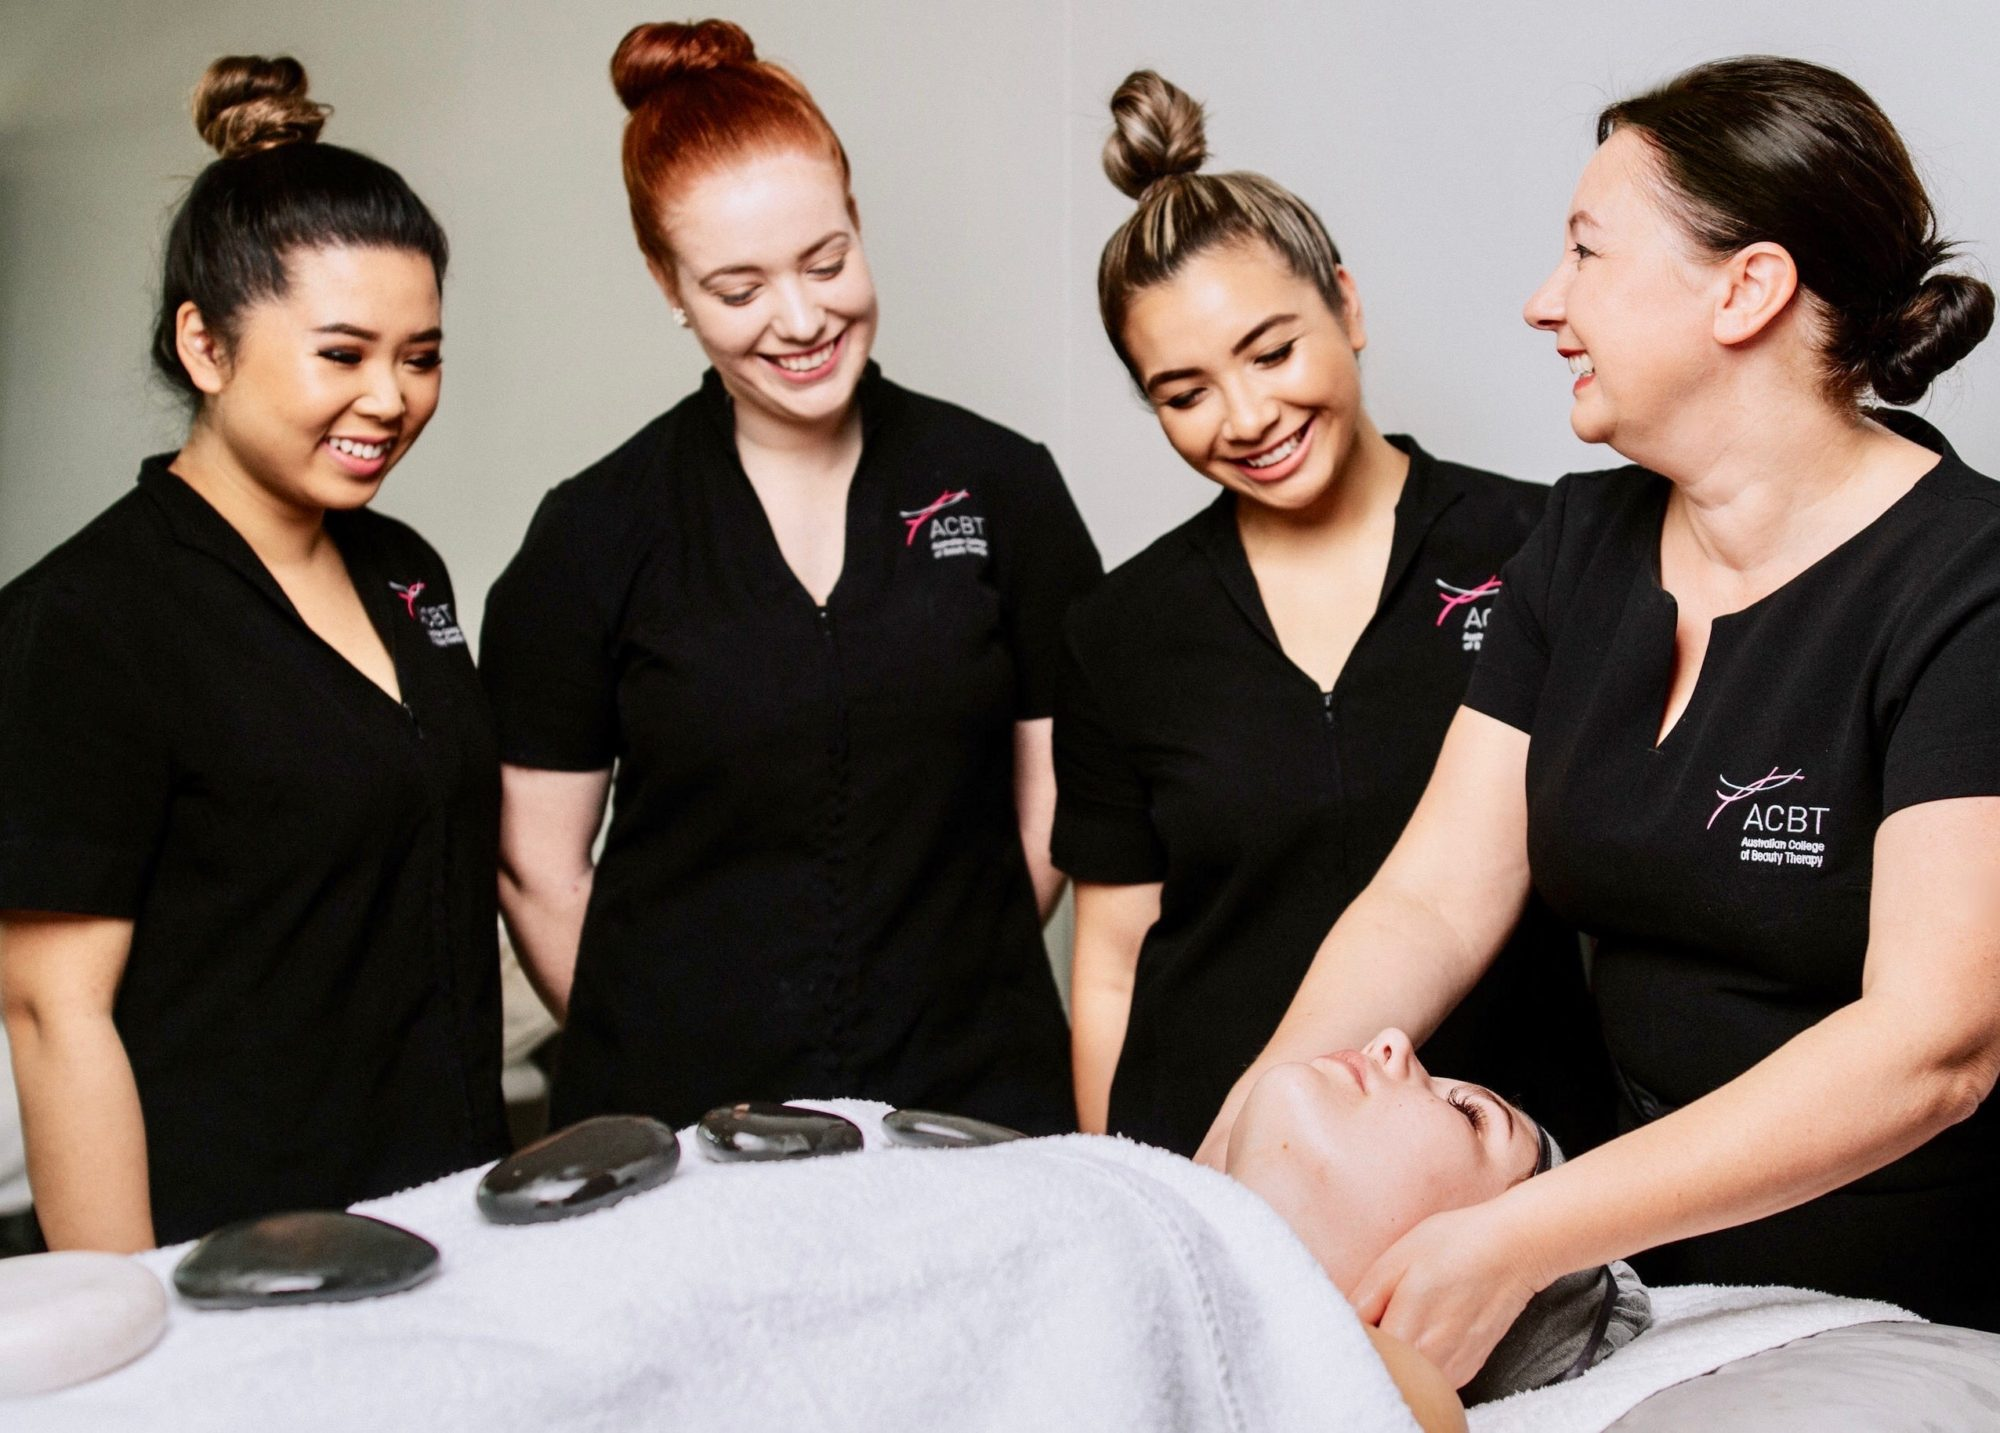 beauty therapy career options